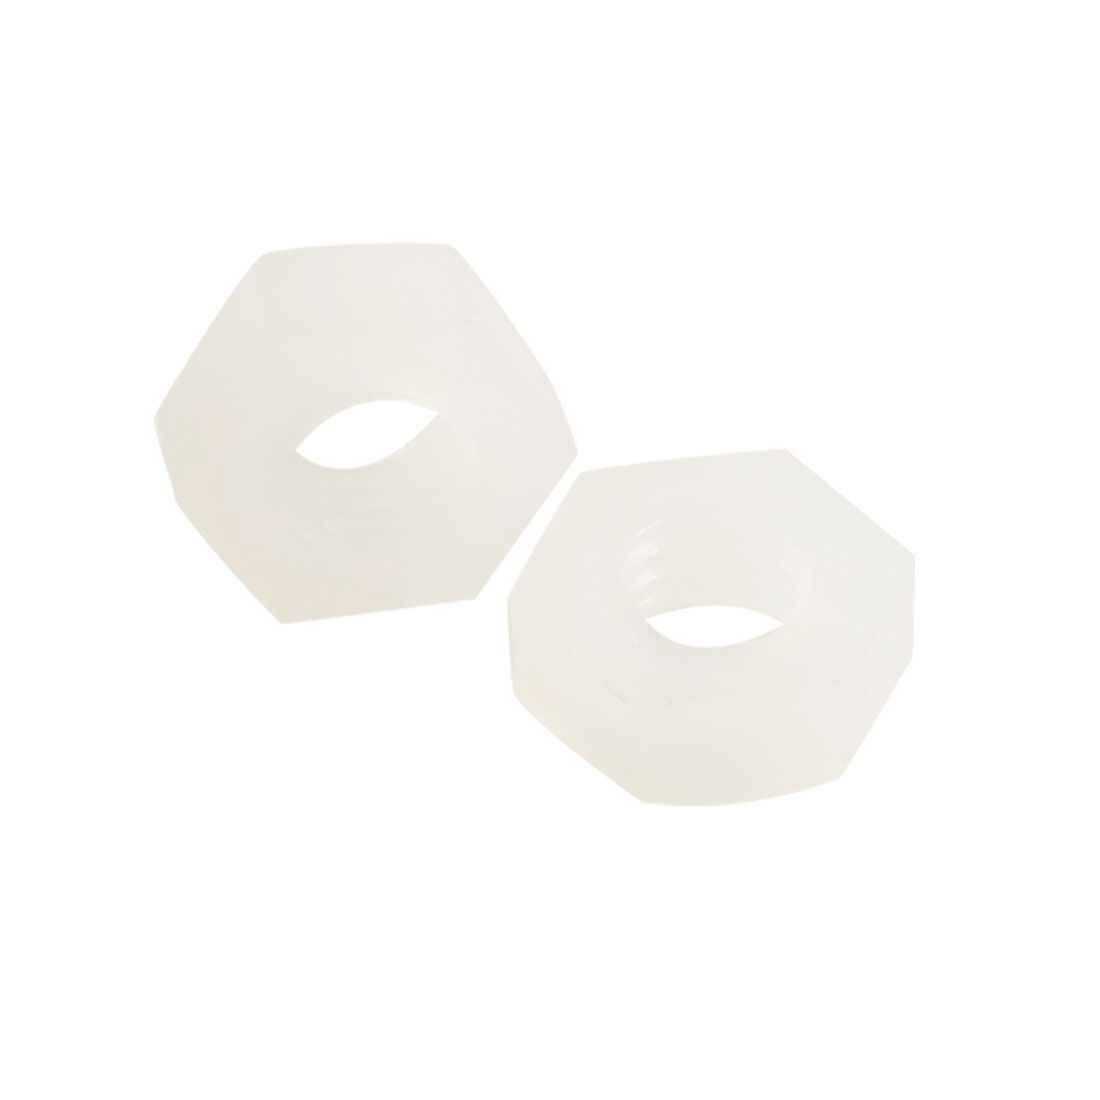 PN-4N 50 Pcs 3mm Height Plastic Hexagonal Hex Screw Nut White